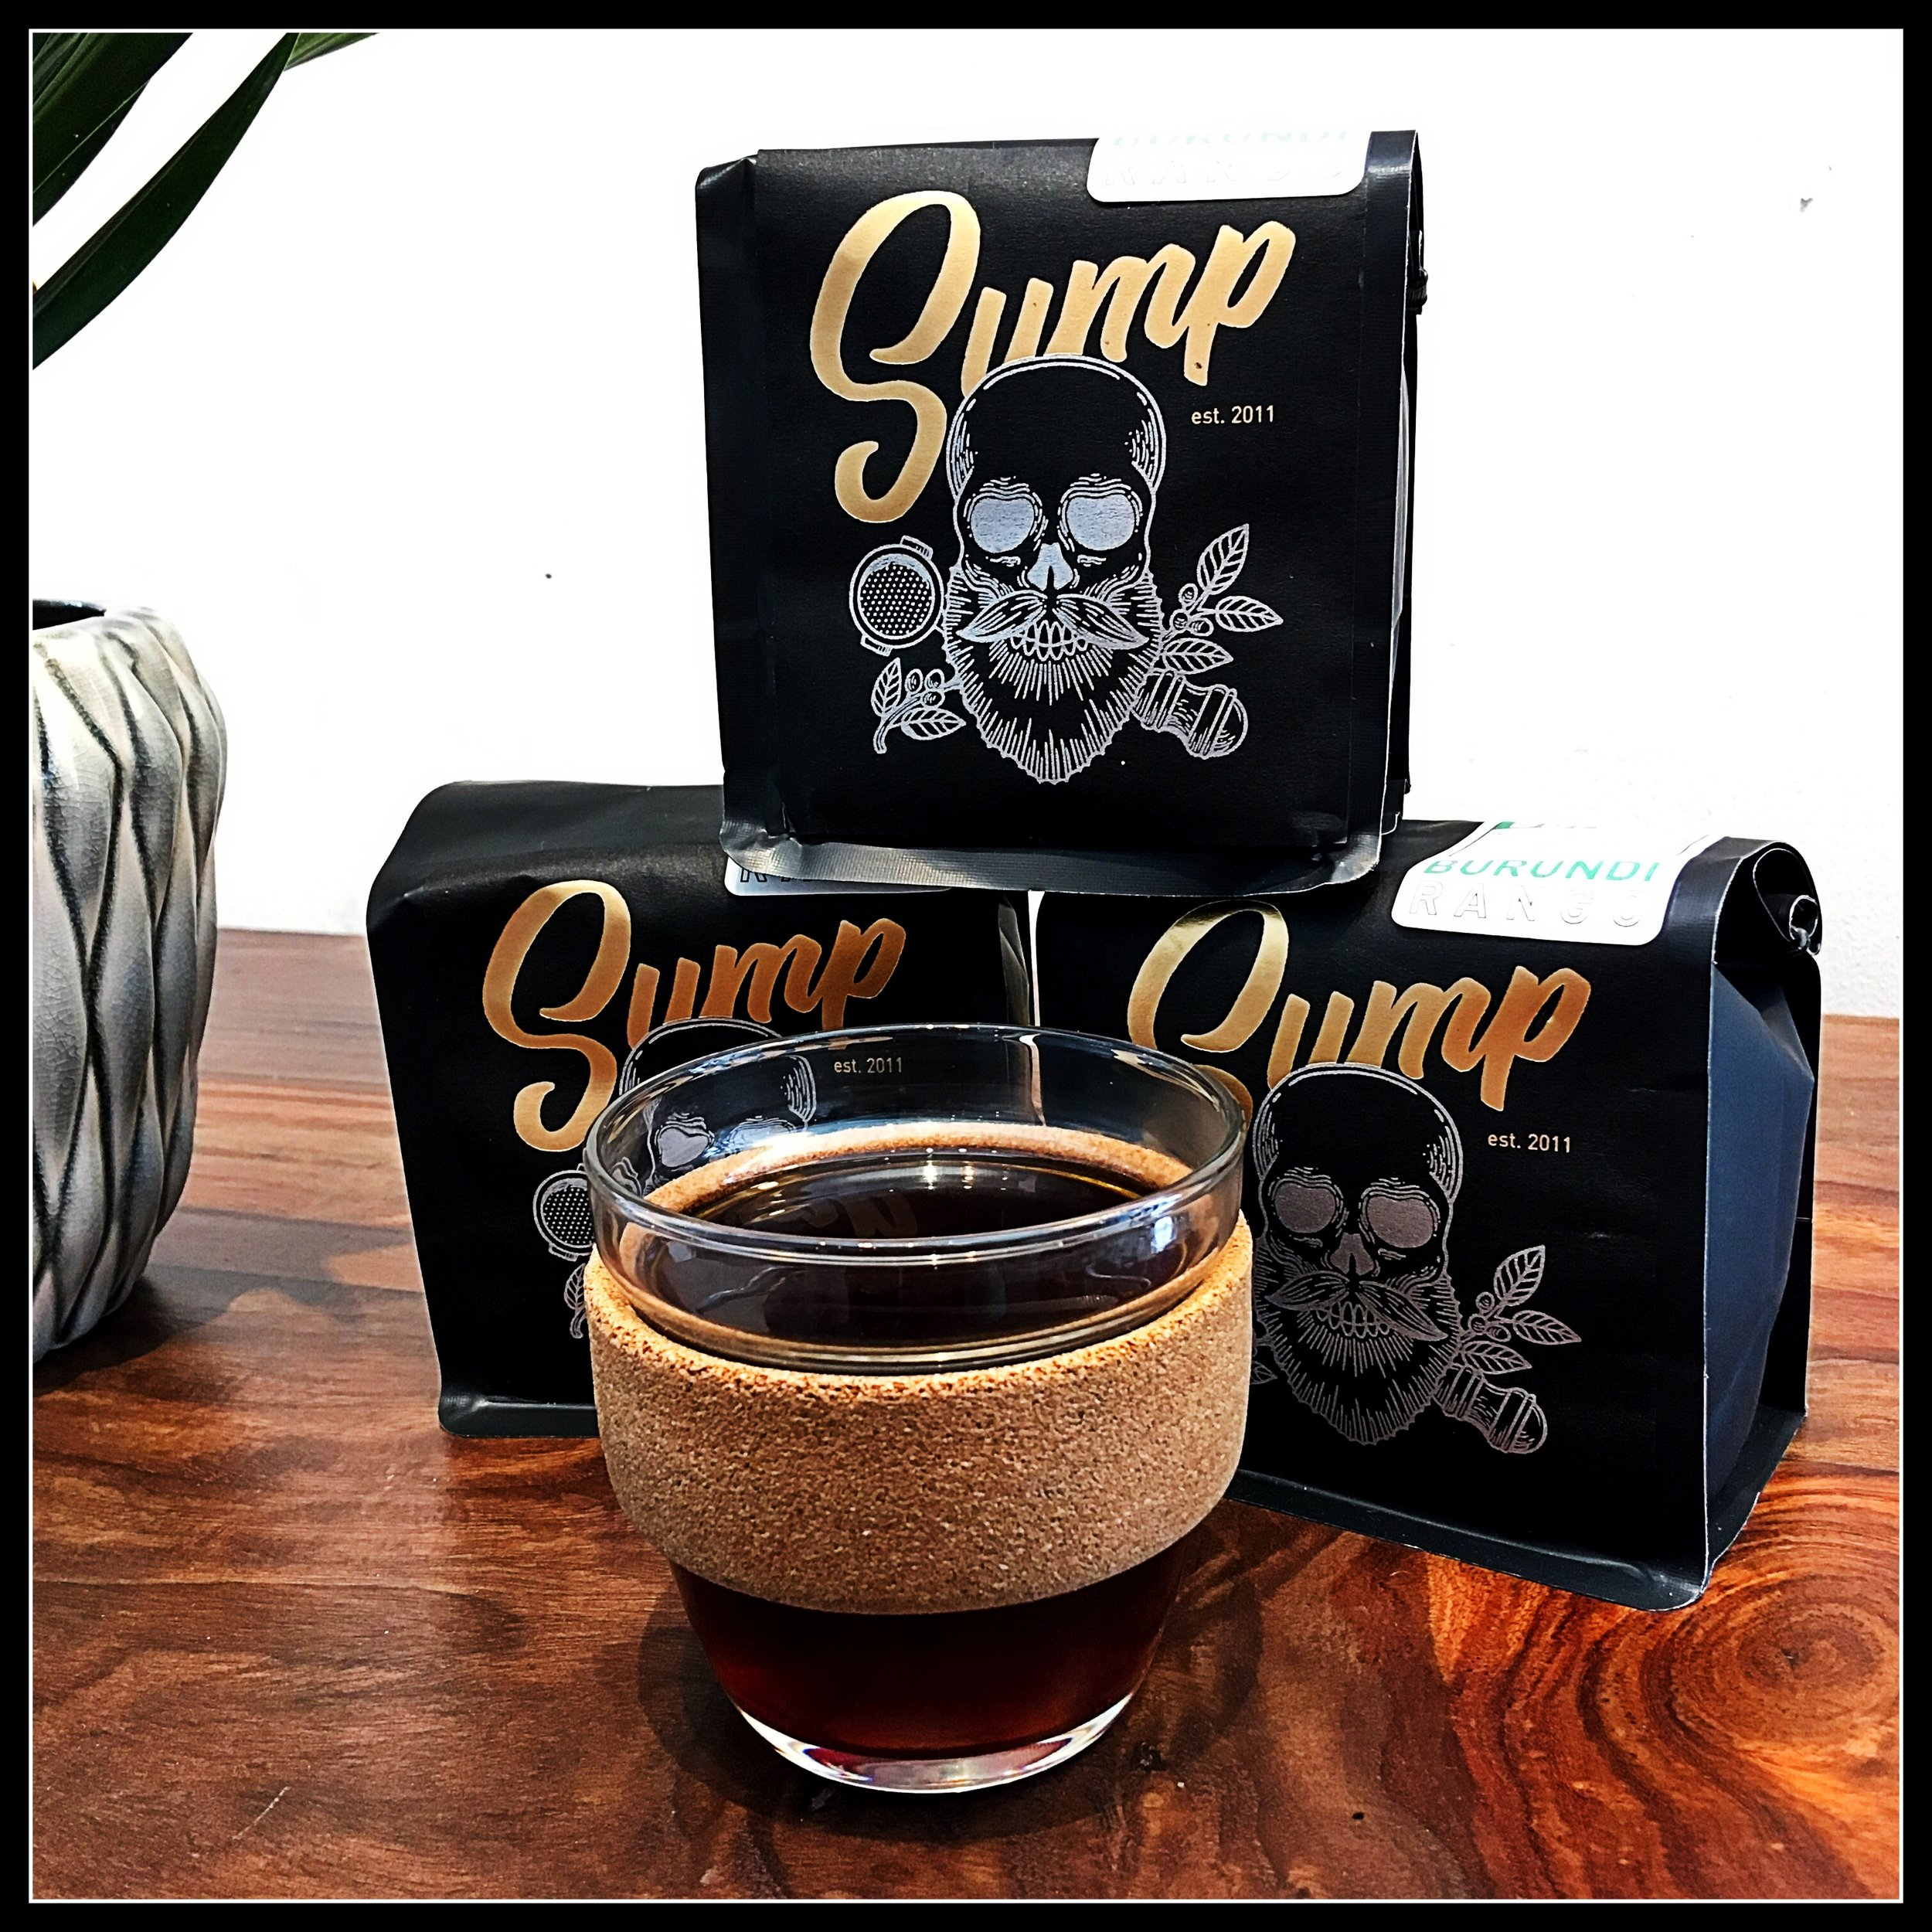 Sump Coffee Roasters - Sump Coffee Roasters is based in St. Louis and has a location in Nashville. Their roast style is unlike any other, bringing bold flavors, light roasts, and sweet balance to every bean they release. We have new coffees from Sump every week available on our shelves.Check out Sump Coffee ➝